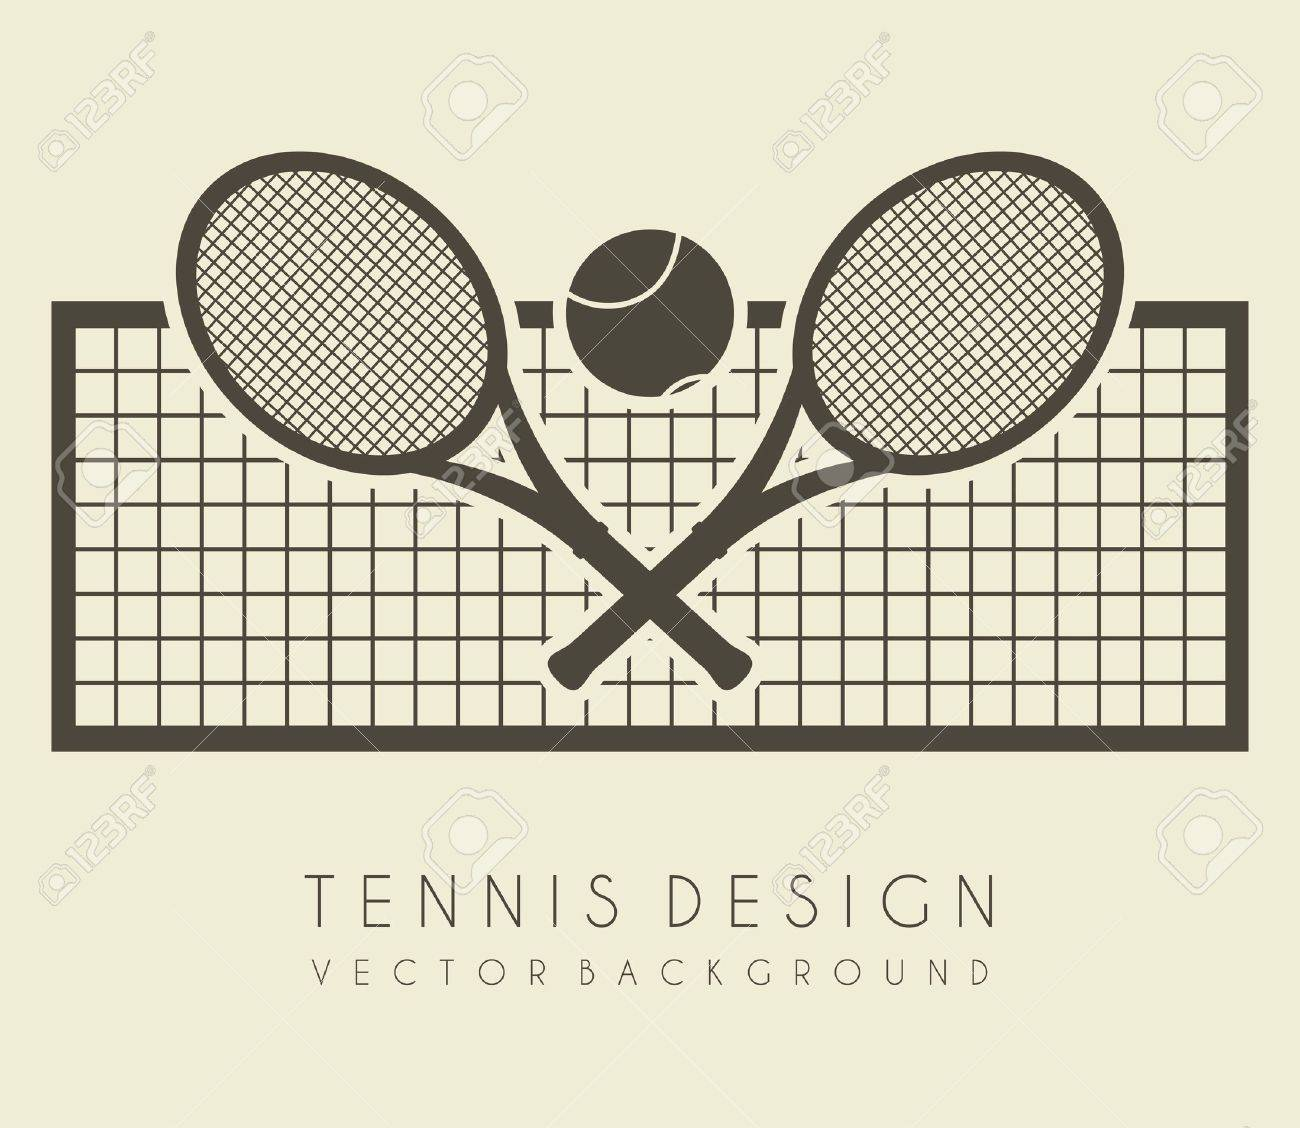 net design over white background vector illustration Stock Vector - 19916591